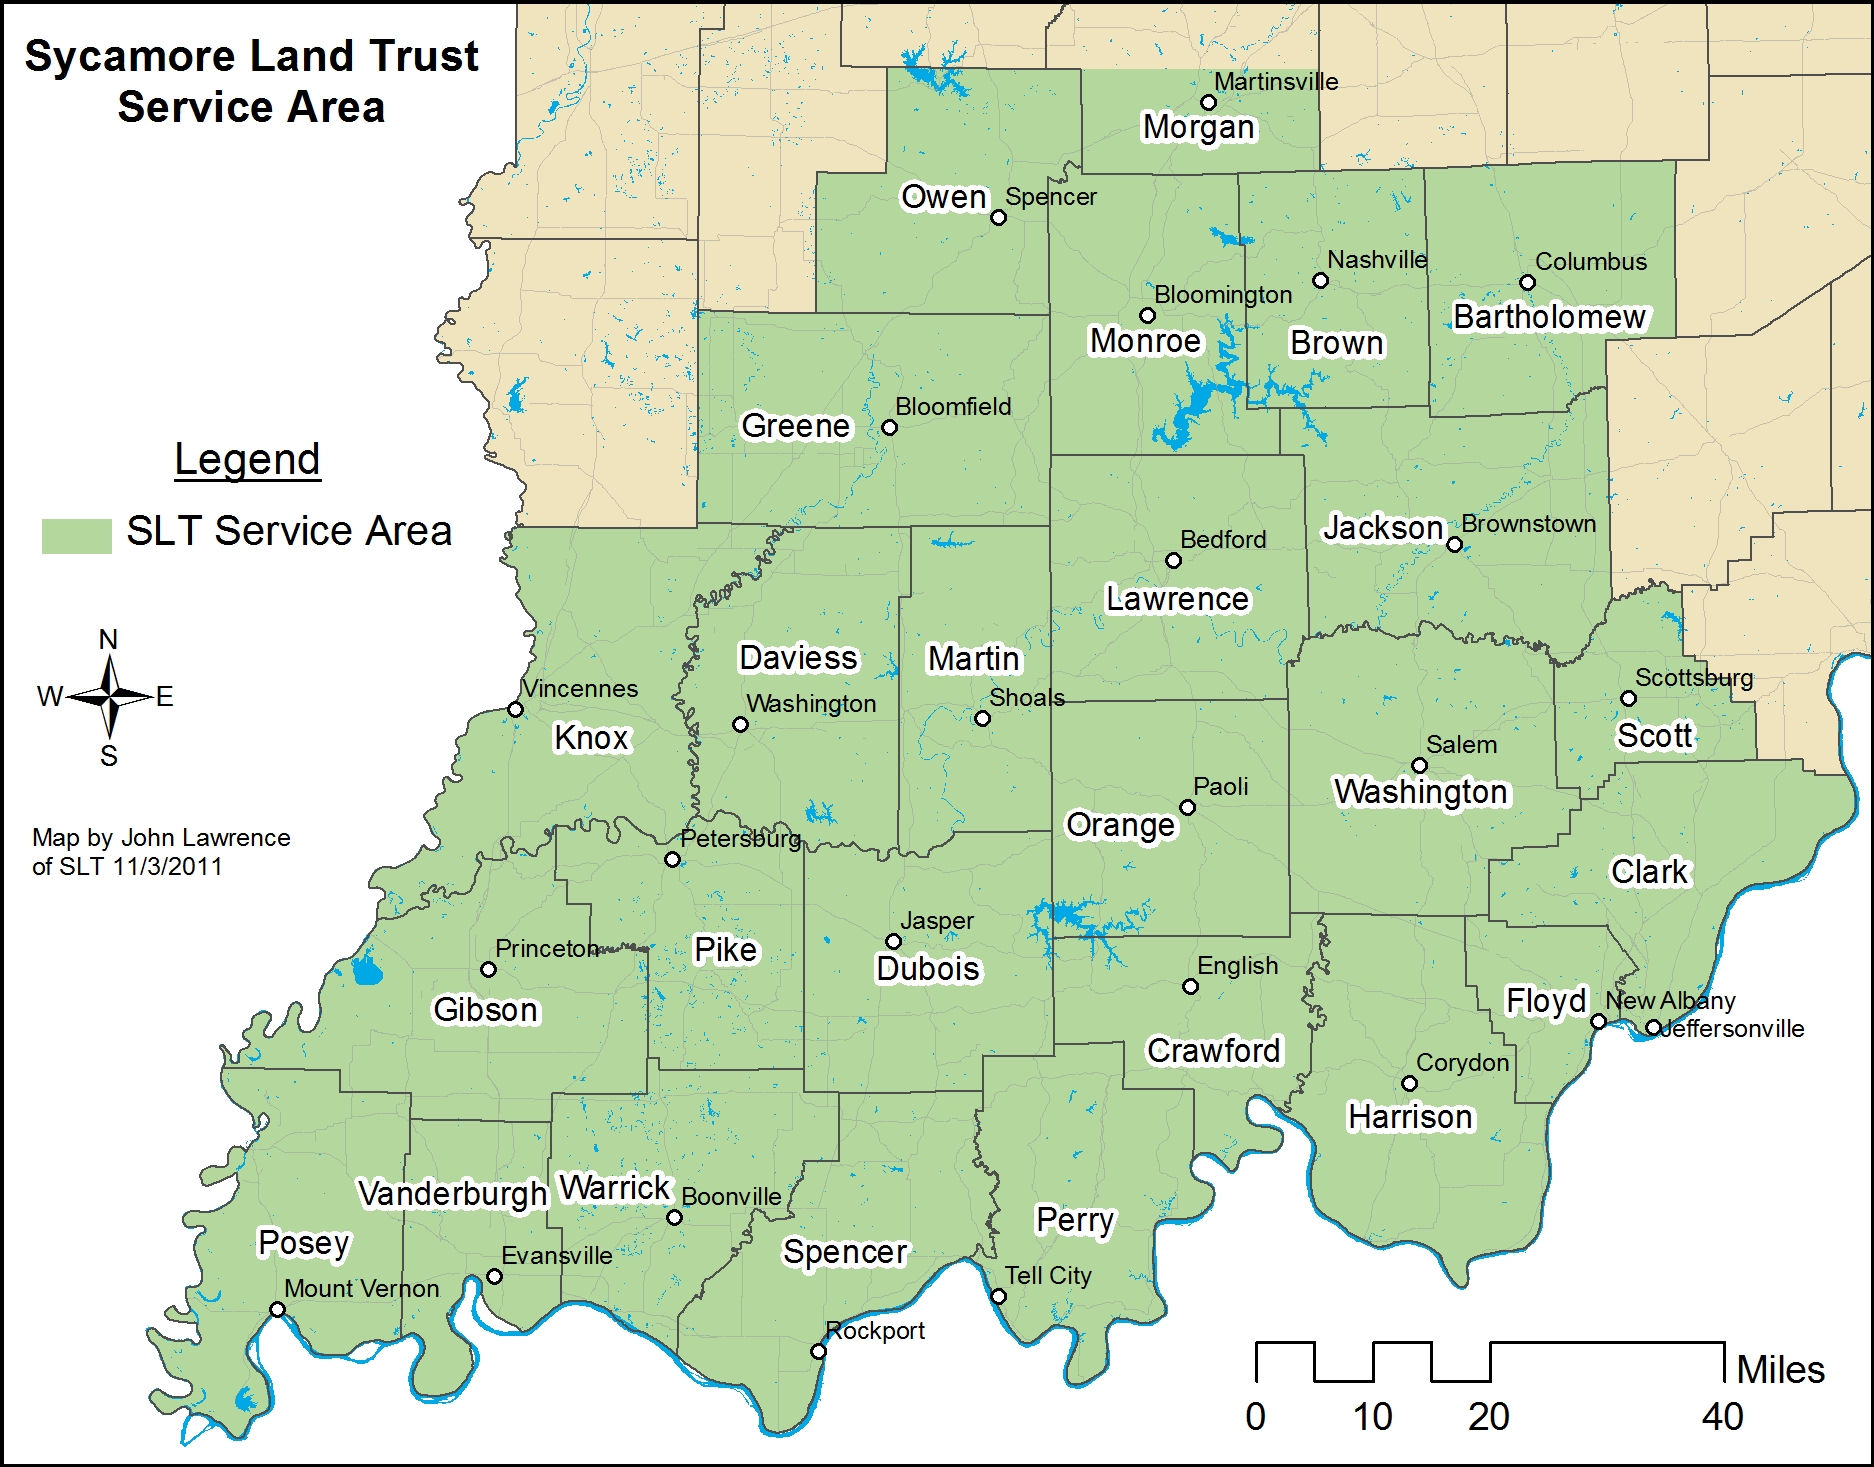 Preserve Your Land   Sycamore Land Trust